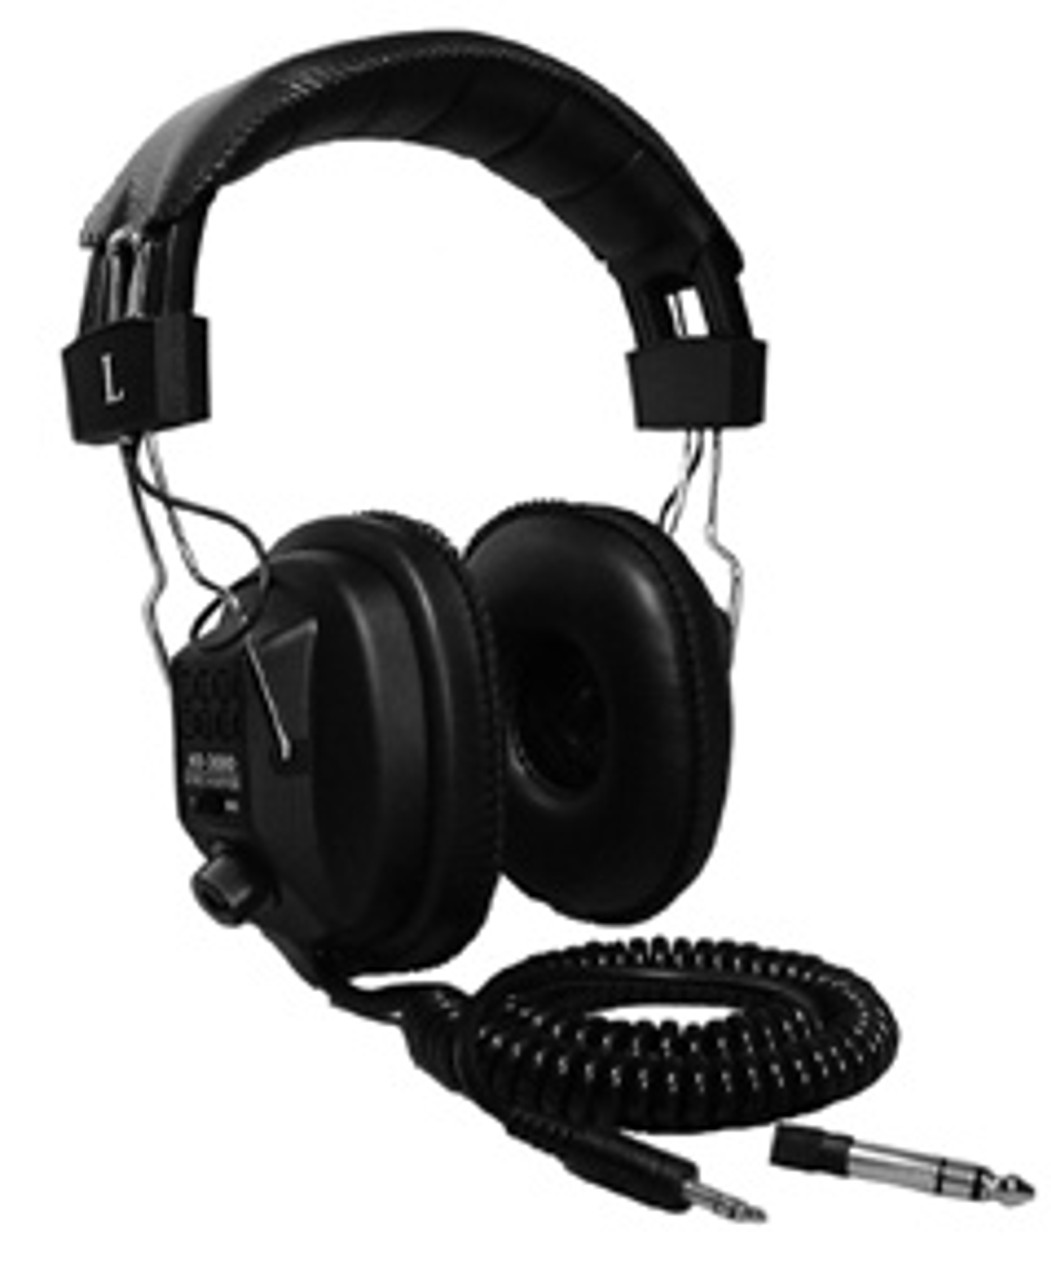 STEREO HEADPHONE LUXURY MODEL